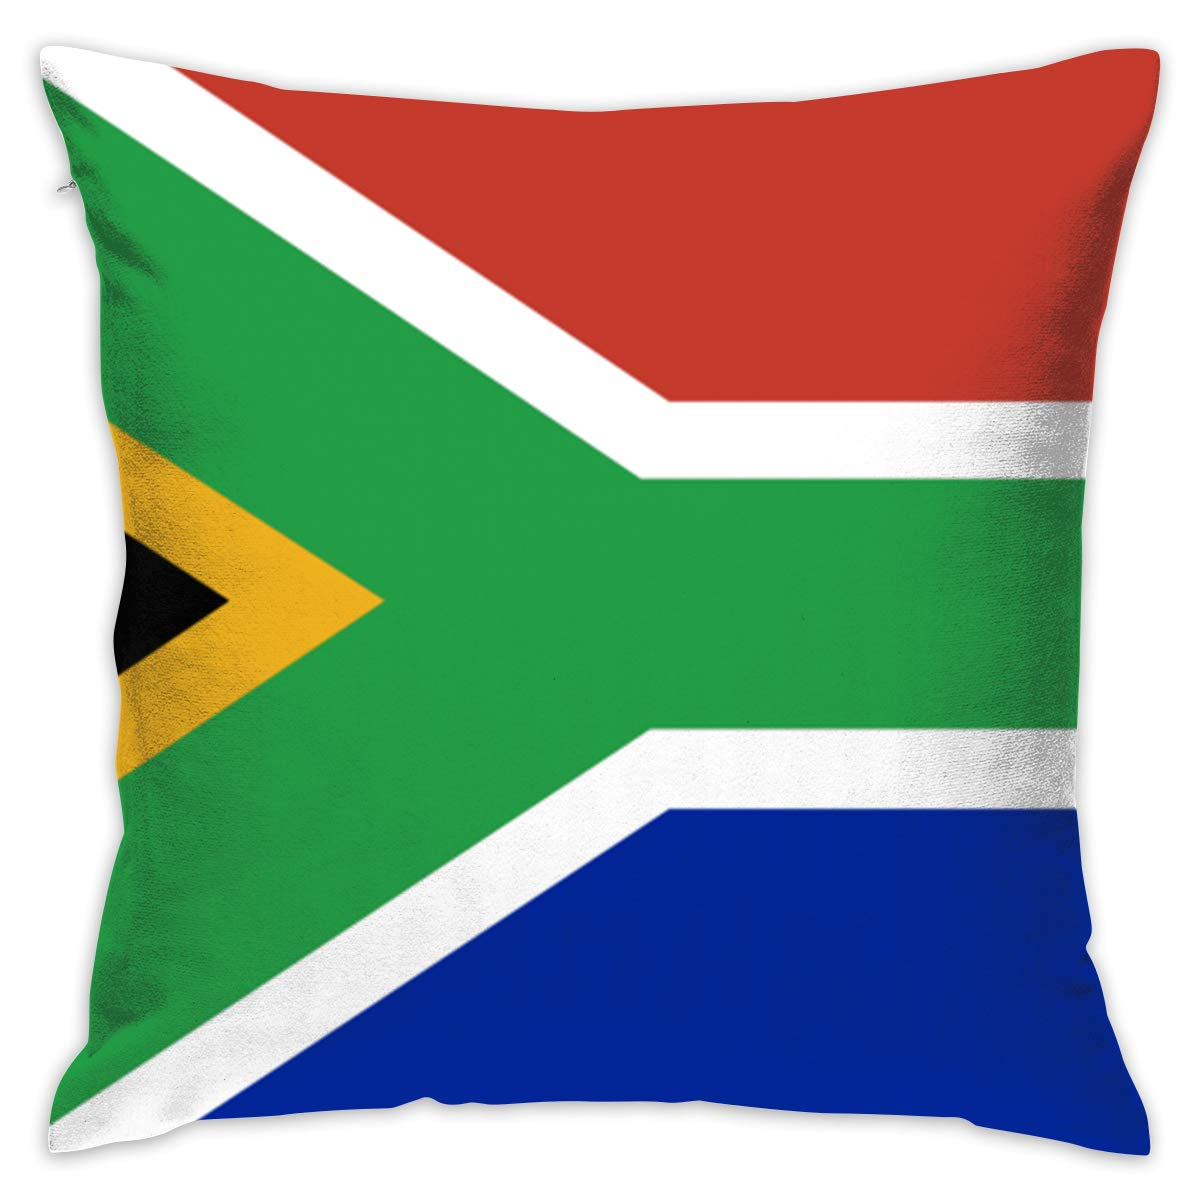 Stupendous Amazon Com Iehfe Mcnxb South Africa Flag Pillow Square Onthecornerstone Fun Painted Chair Ideas Images Onthecornerstoneorg